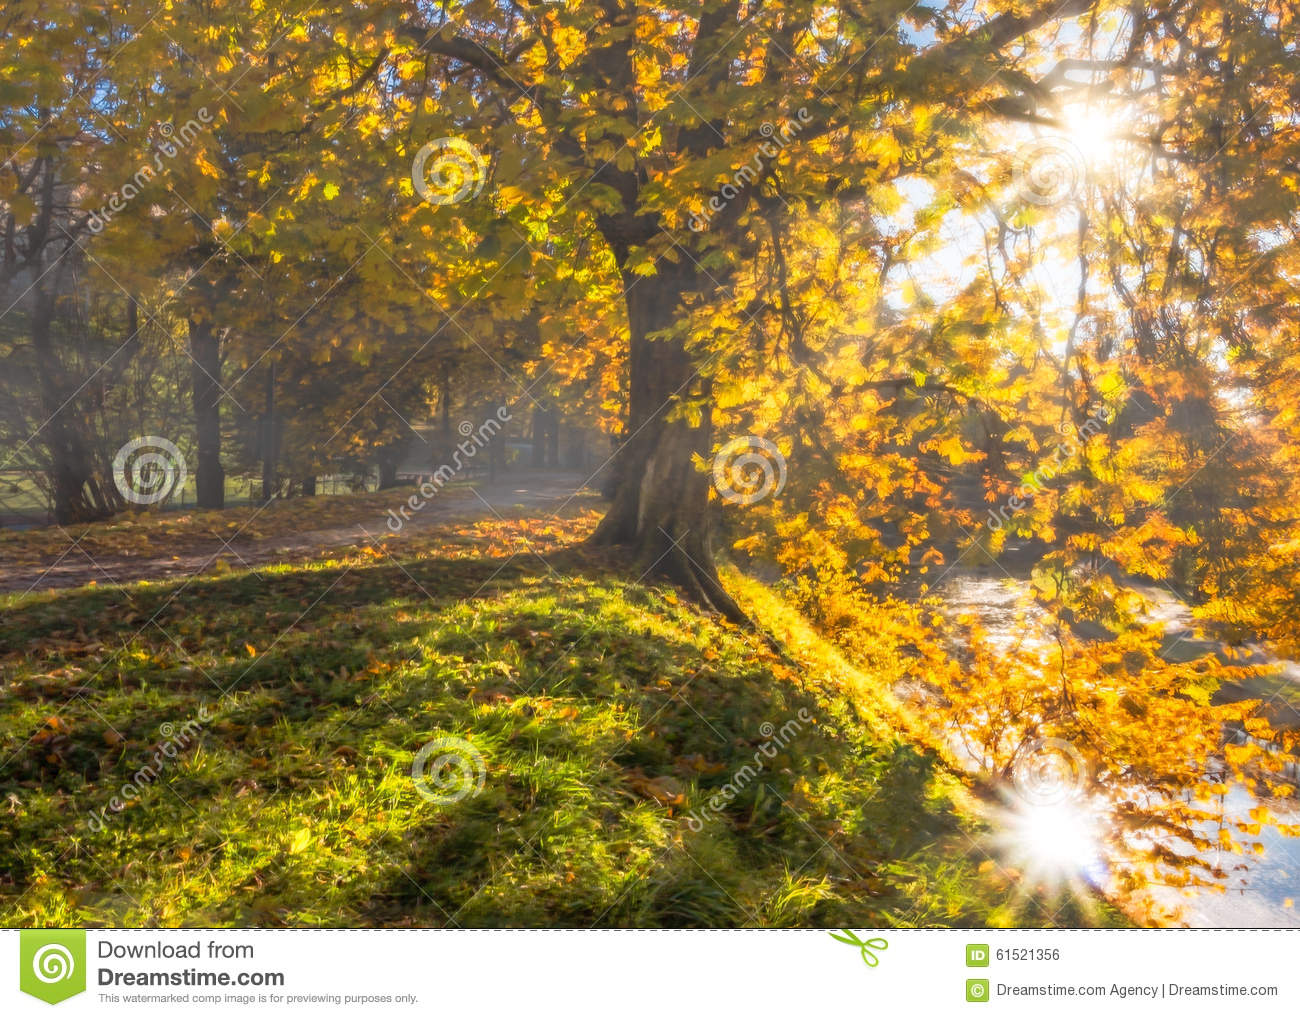 Download Autumn Sun In The Park, Photomanipulation Stock Photo - Image of background, beauty: 61521356